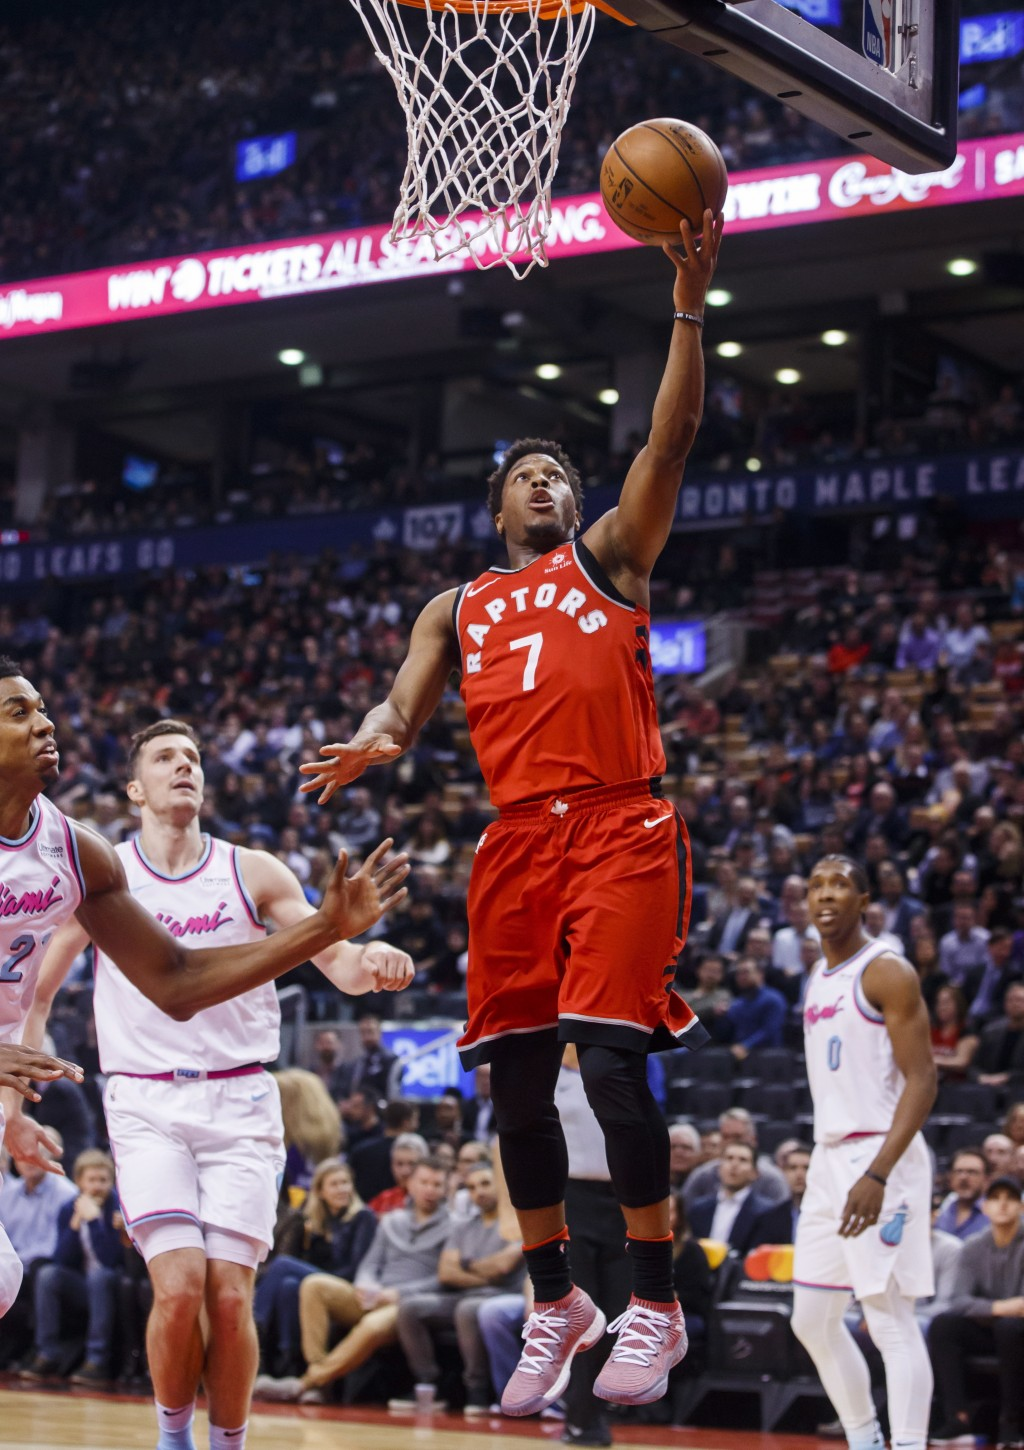 Toronto Raptors' guard Kyle Lowry goes to the basket against the Miami Heat during the first half of an NBA basketball game, Tuesday, Feb. 13, 2018, i